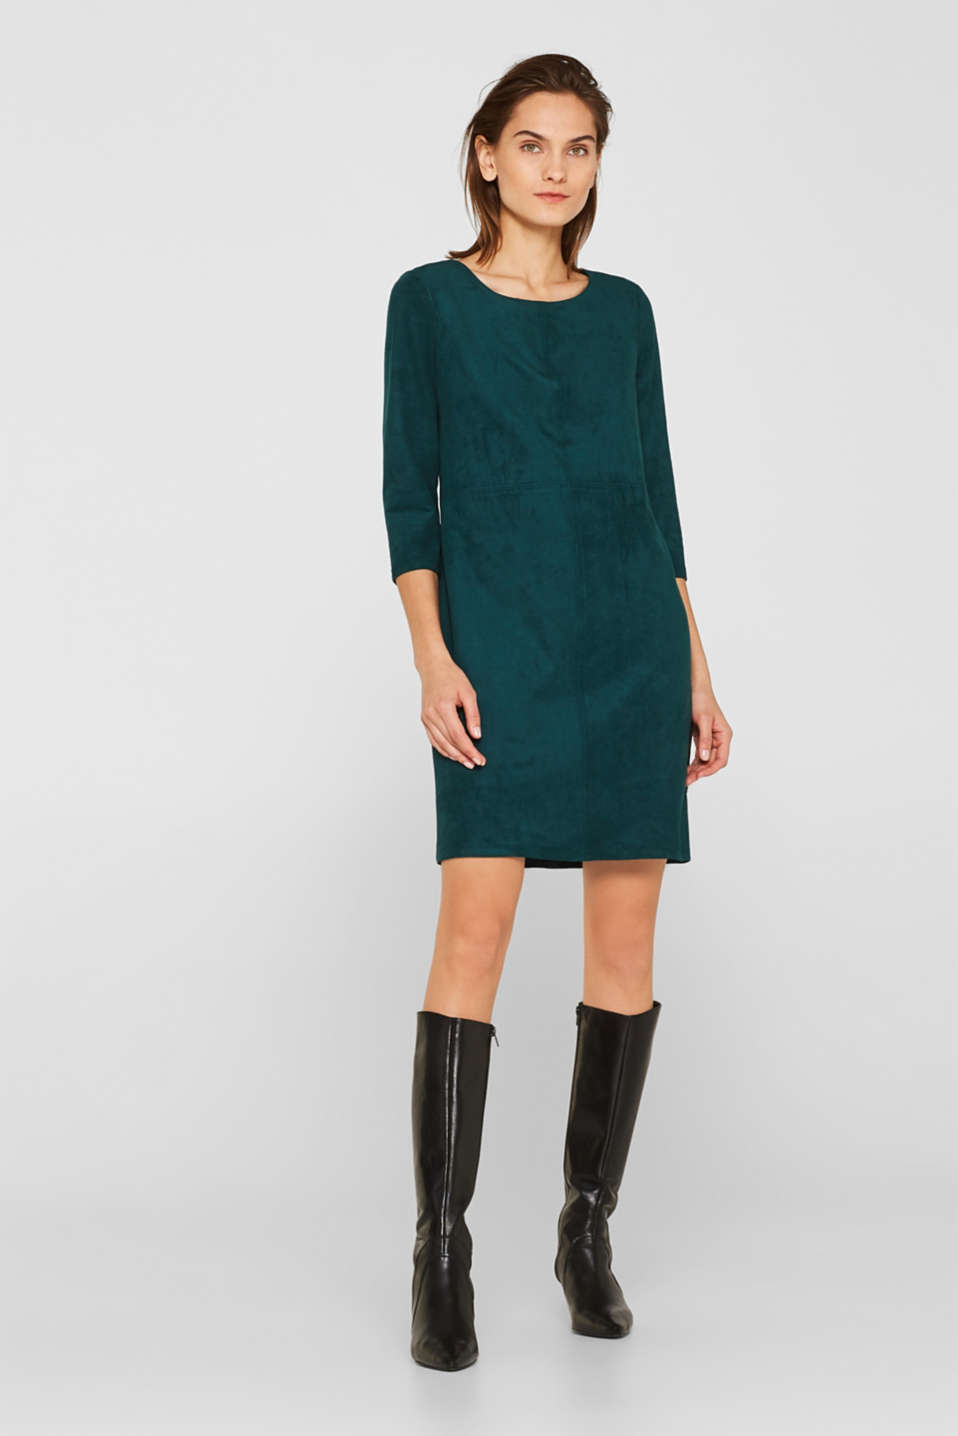 Stretch faux leather dress, DARK TEAL GREEN, detail image number 1